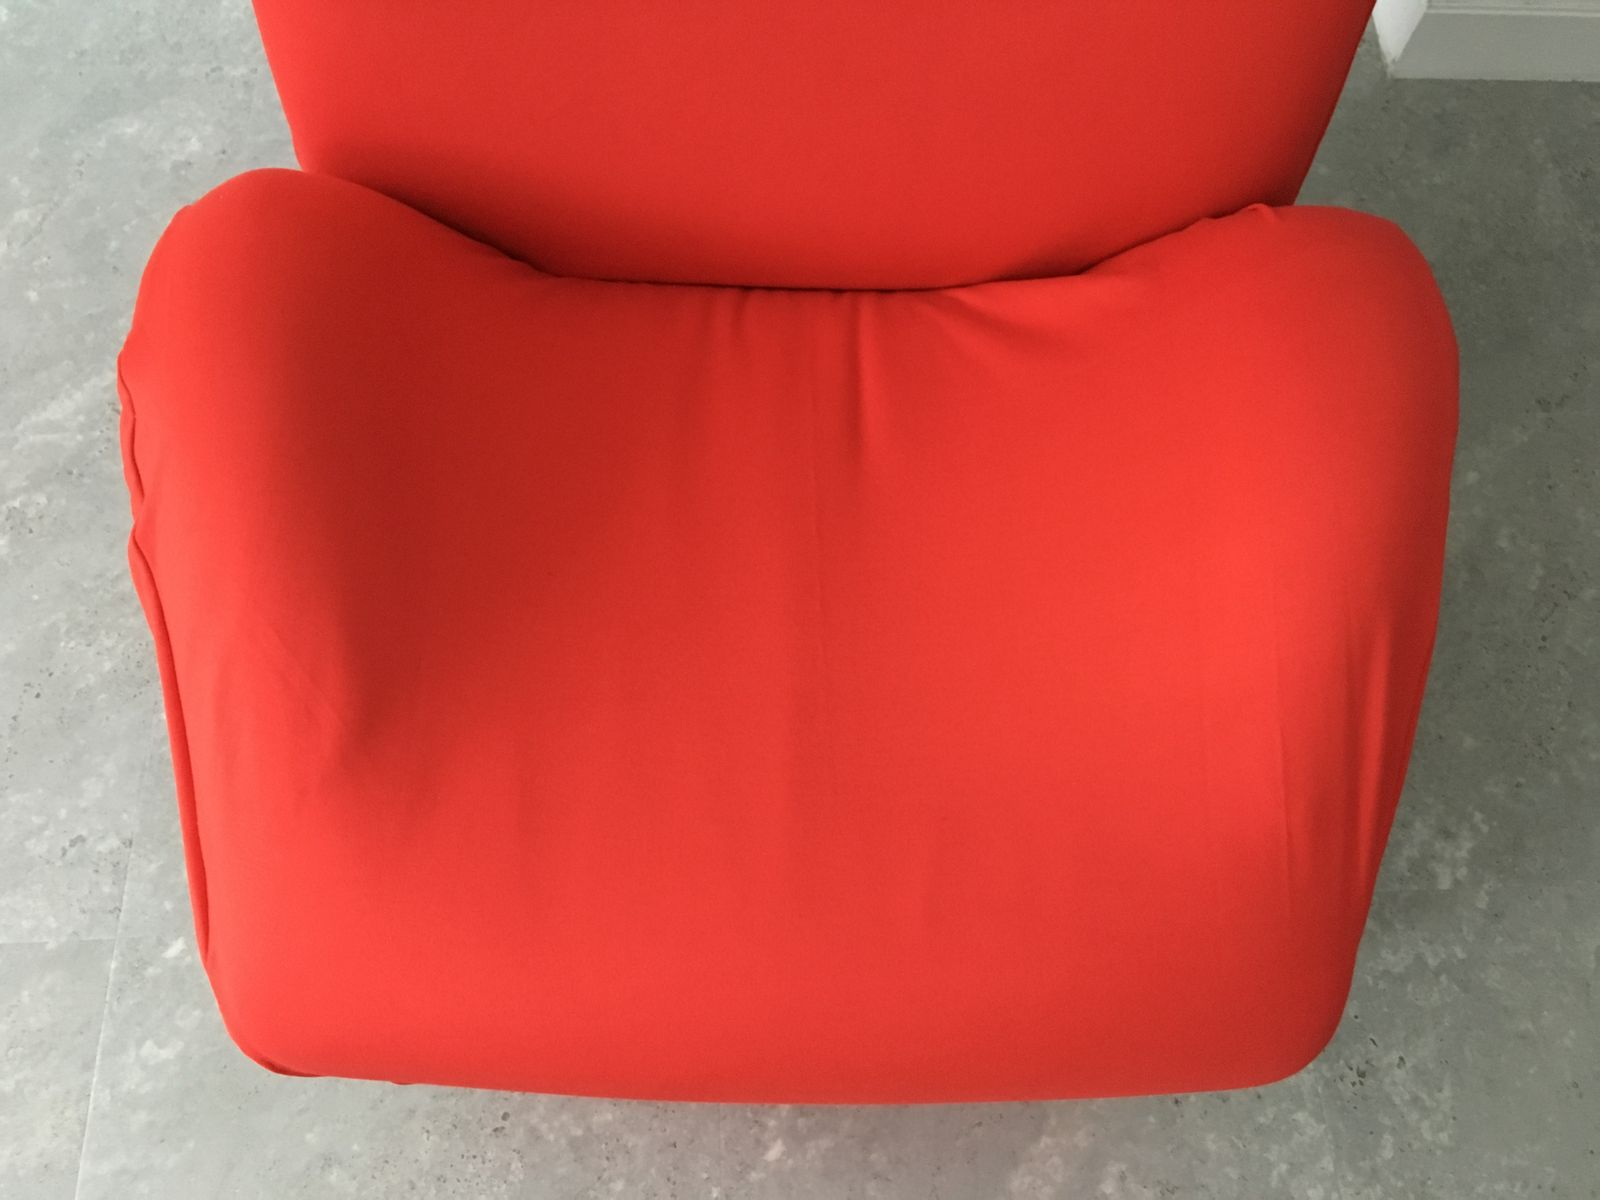 Wink Chair By Kita Toshiyuki For Cassina 1970s For Sale